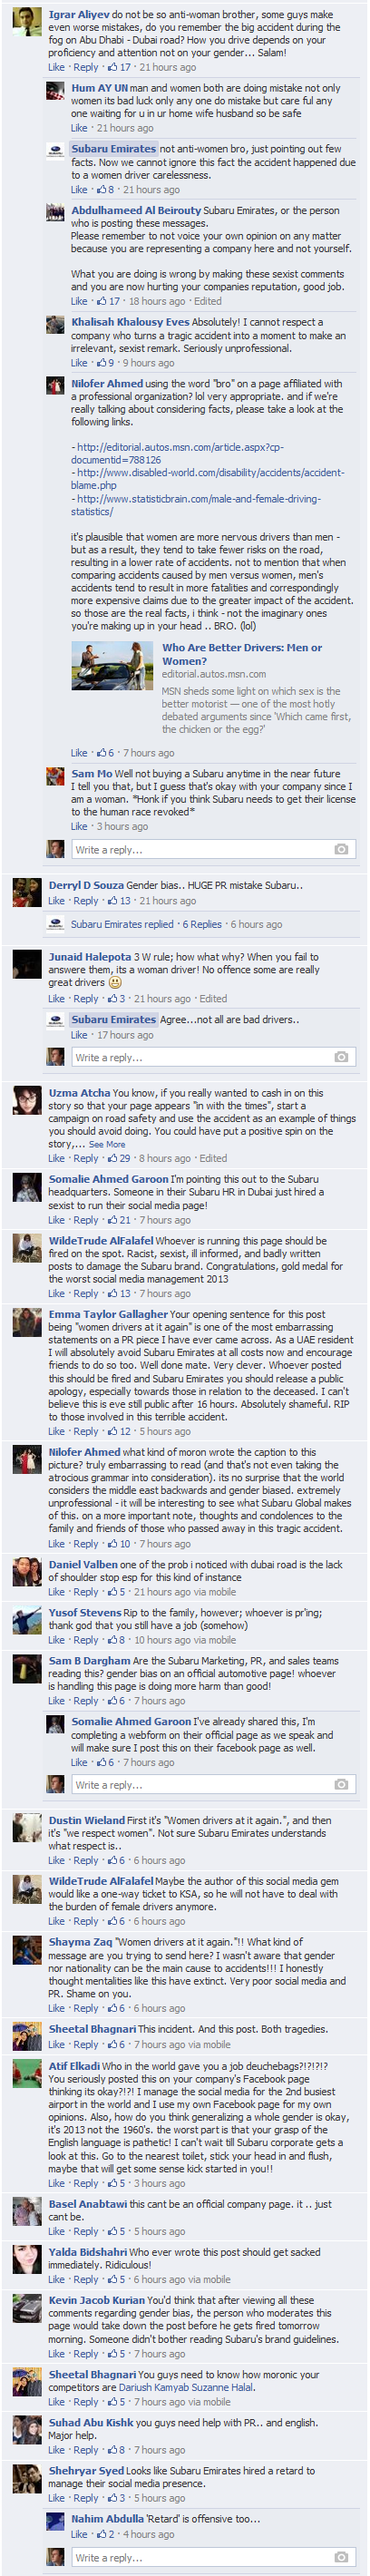 This is the first comments screen shot. Note the defensive post by Subaru Emirates and the anger of the responses.